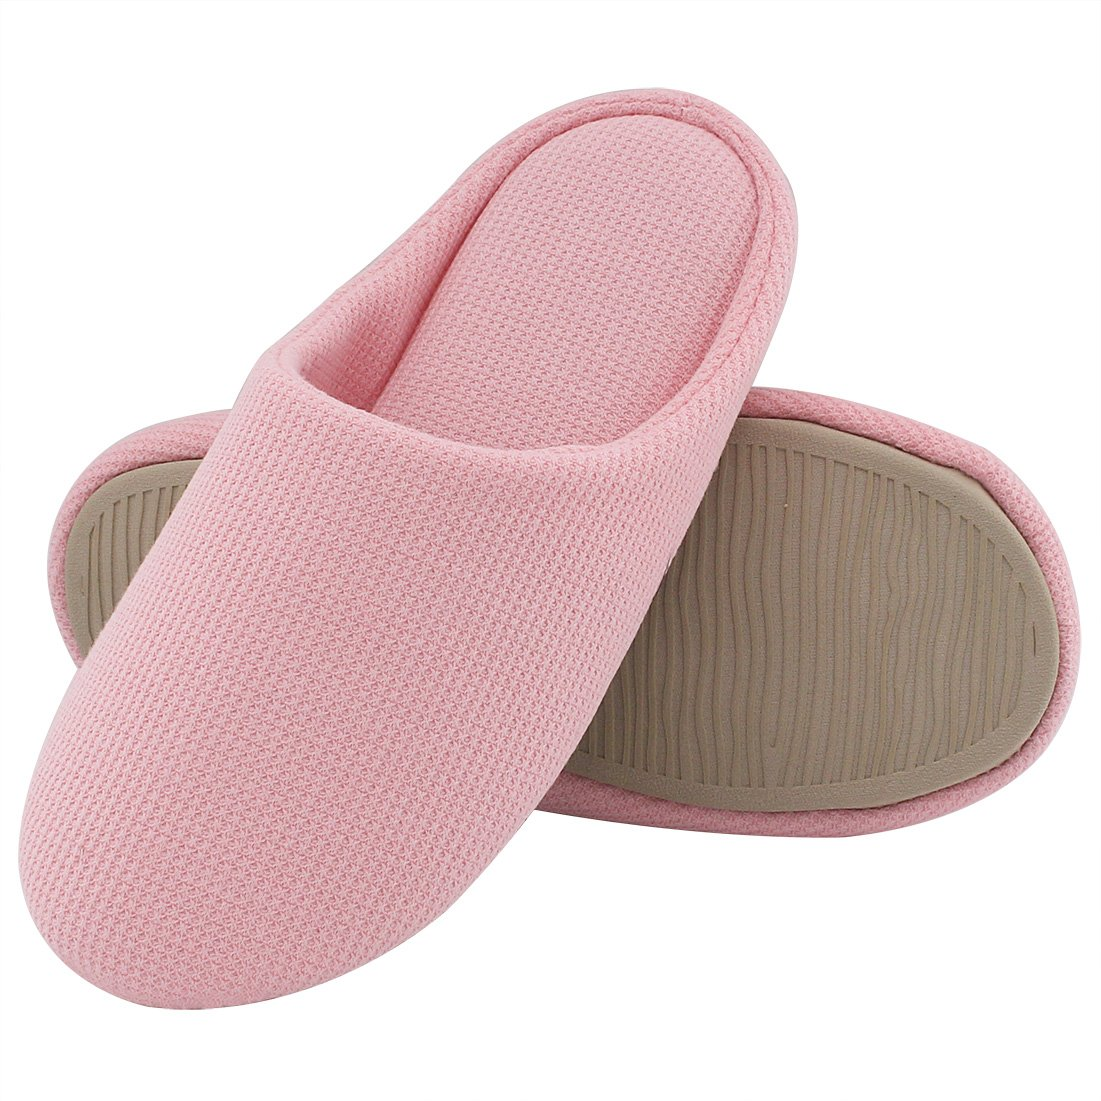 Women's Comfort Knitted Cotton Slippers Washable Flat Closed Toe Ultra Lightweight Indoor Shoes with Non-Slip Sole (Large / 9-10 B(M) US, Pink)